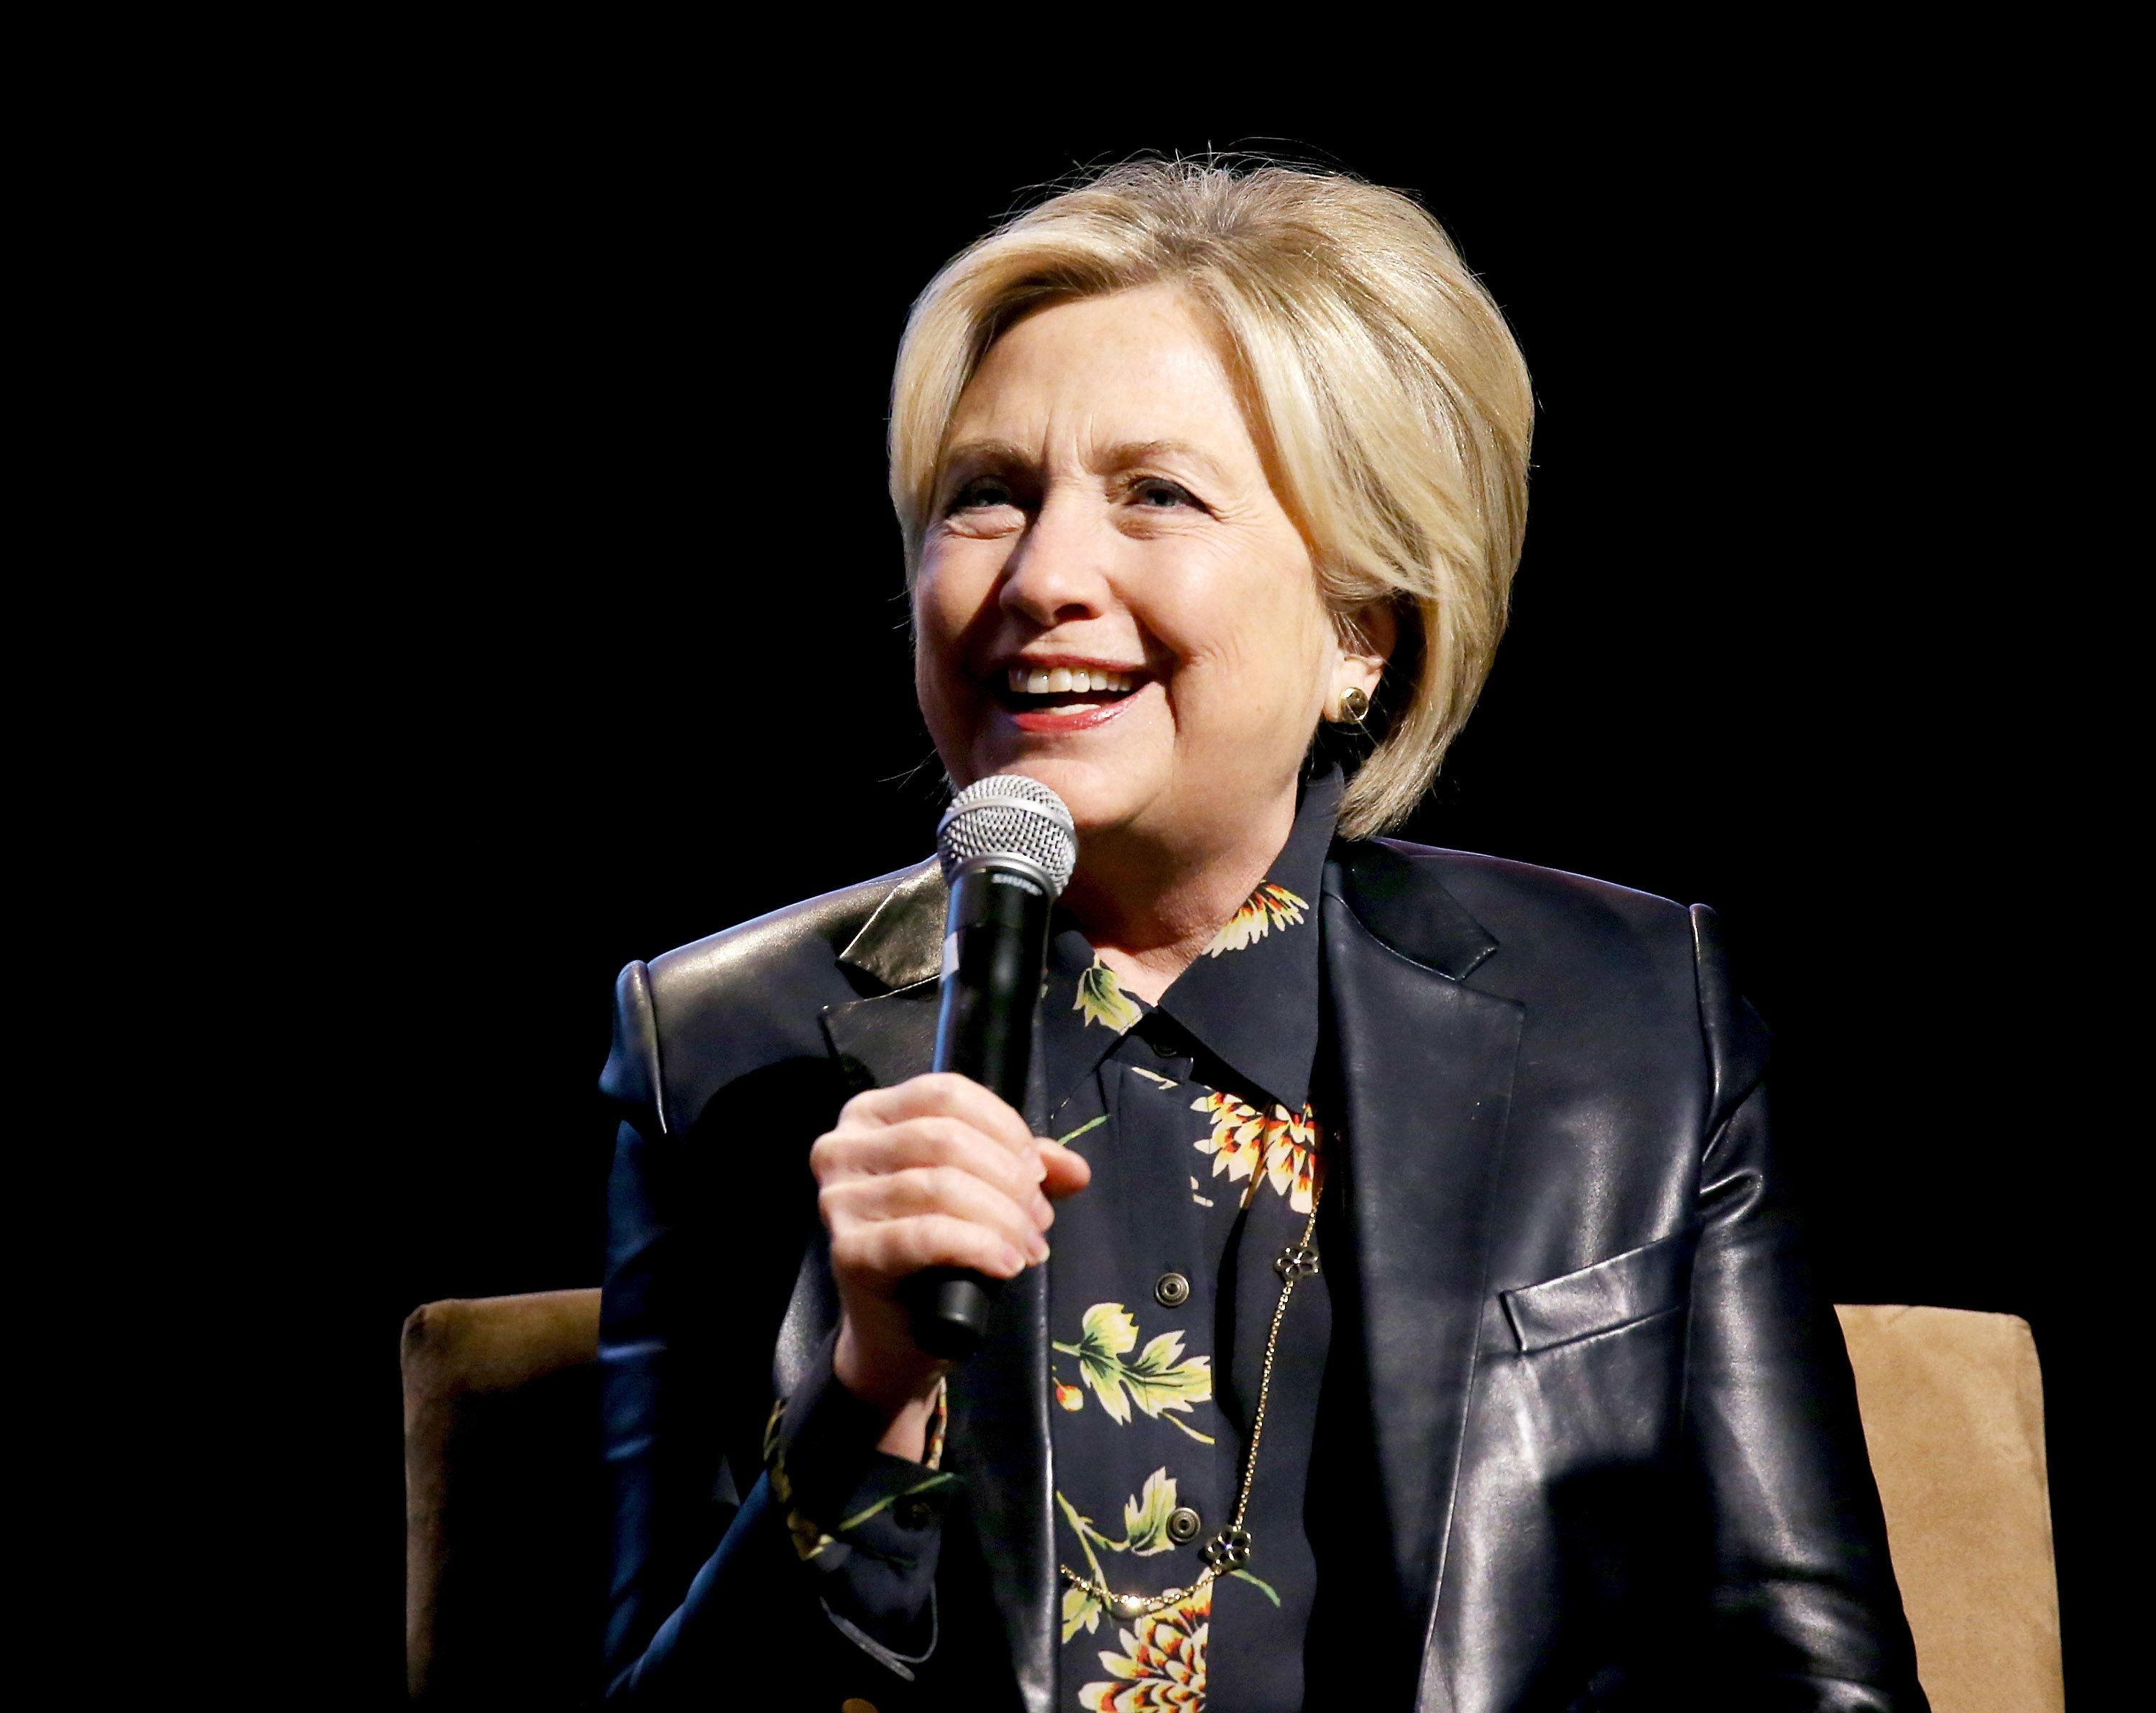 LOS ANGELES, CA - DECEMBER 15:  Former First Lady of the United States, Hillary Clinton speaks onstage during the LA Promise Fund's Girls Build Leadership Summit held at Los Angeles Convention Center on December 15, 2017 in Los Angeles, California.  (Photo by Michael Tran/FilmMagic)